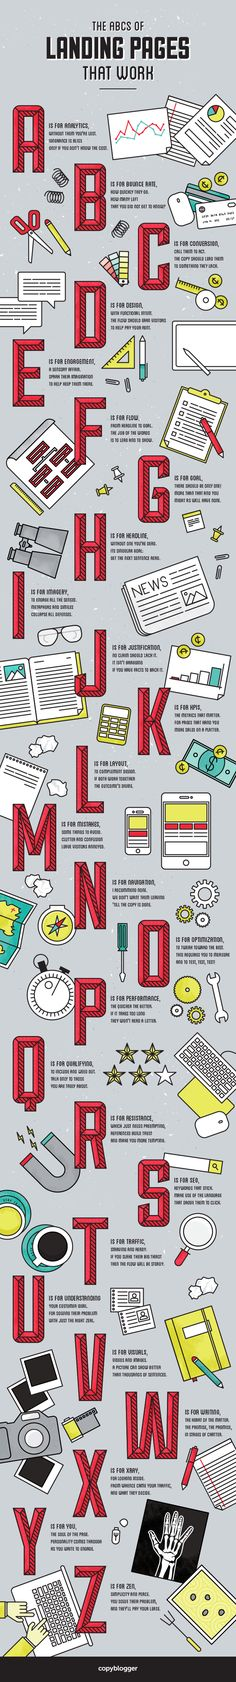 The ABCs of landing pages that work. #infographic #design http://franchise.avenue.eu.com/